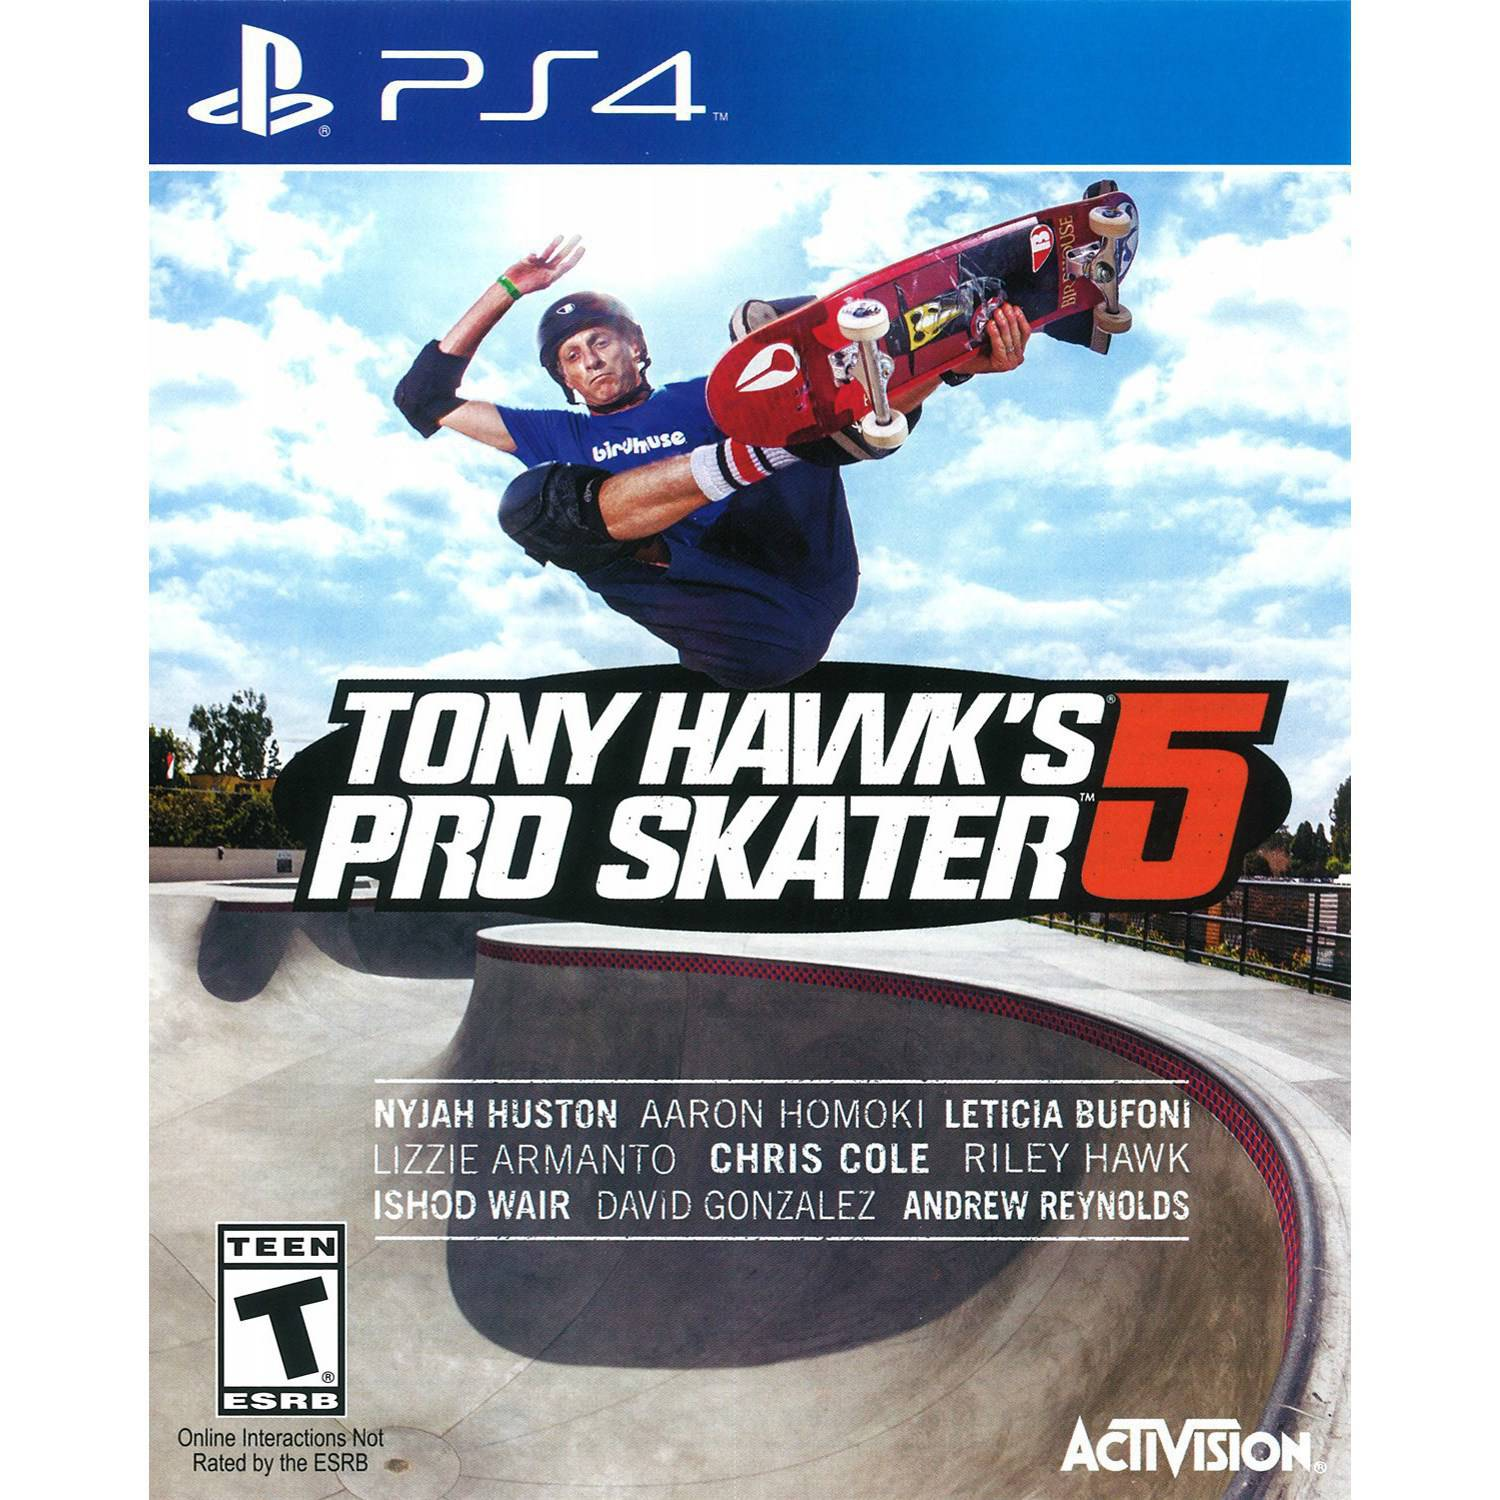 Tony Hawk Pro Skater 5 (PS4) - Pre-Owned